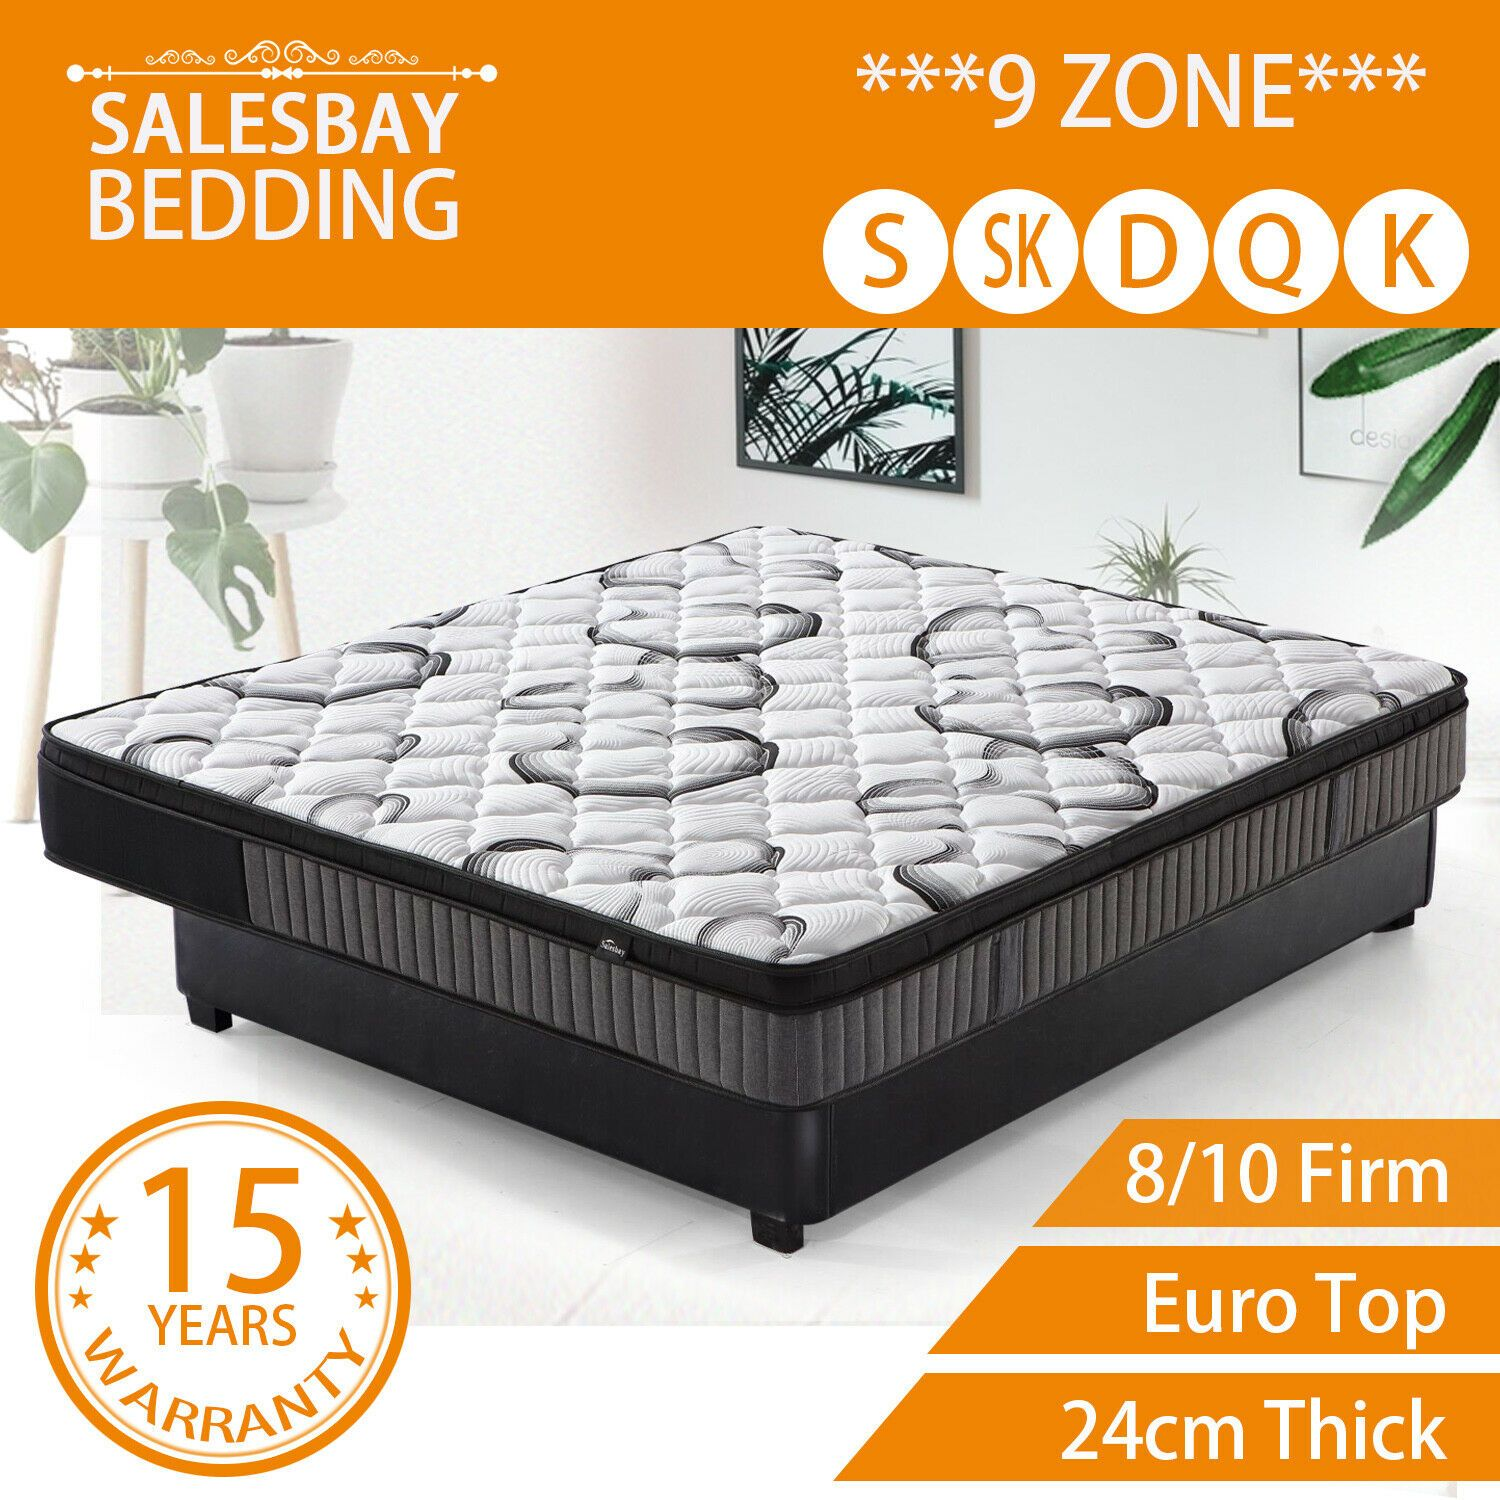 Mattress Super Firm 9 Zone Euro Top 24CM Pocket Spring Memory Foam Back Support Single King Single Double Queen King Size